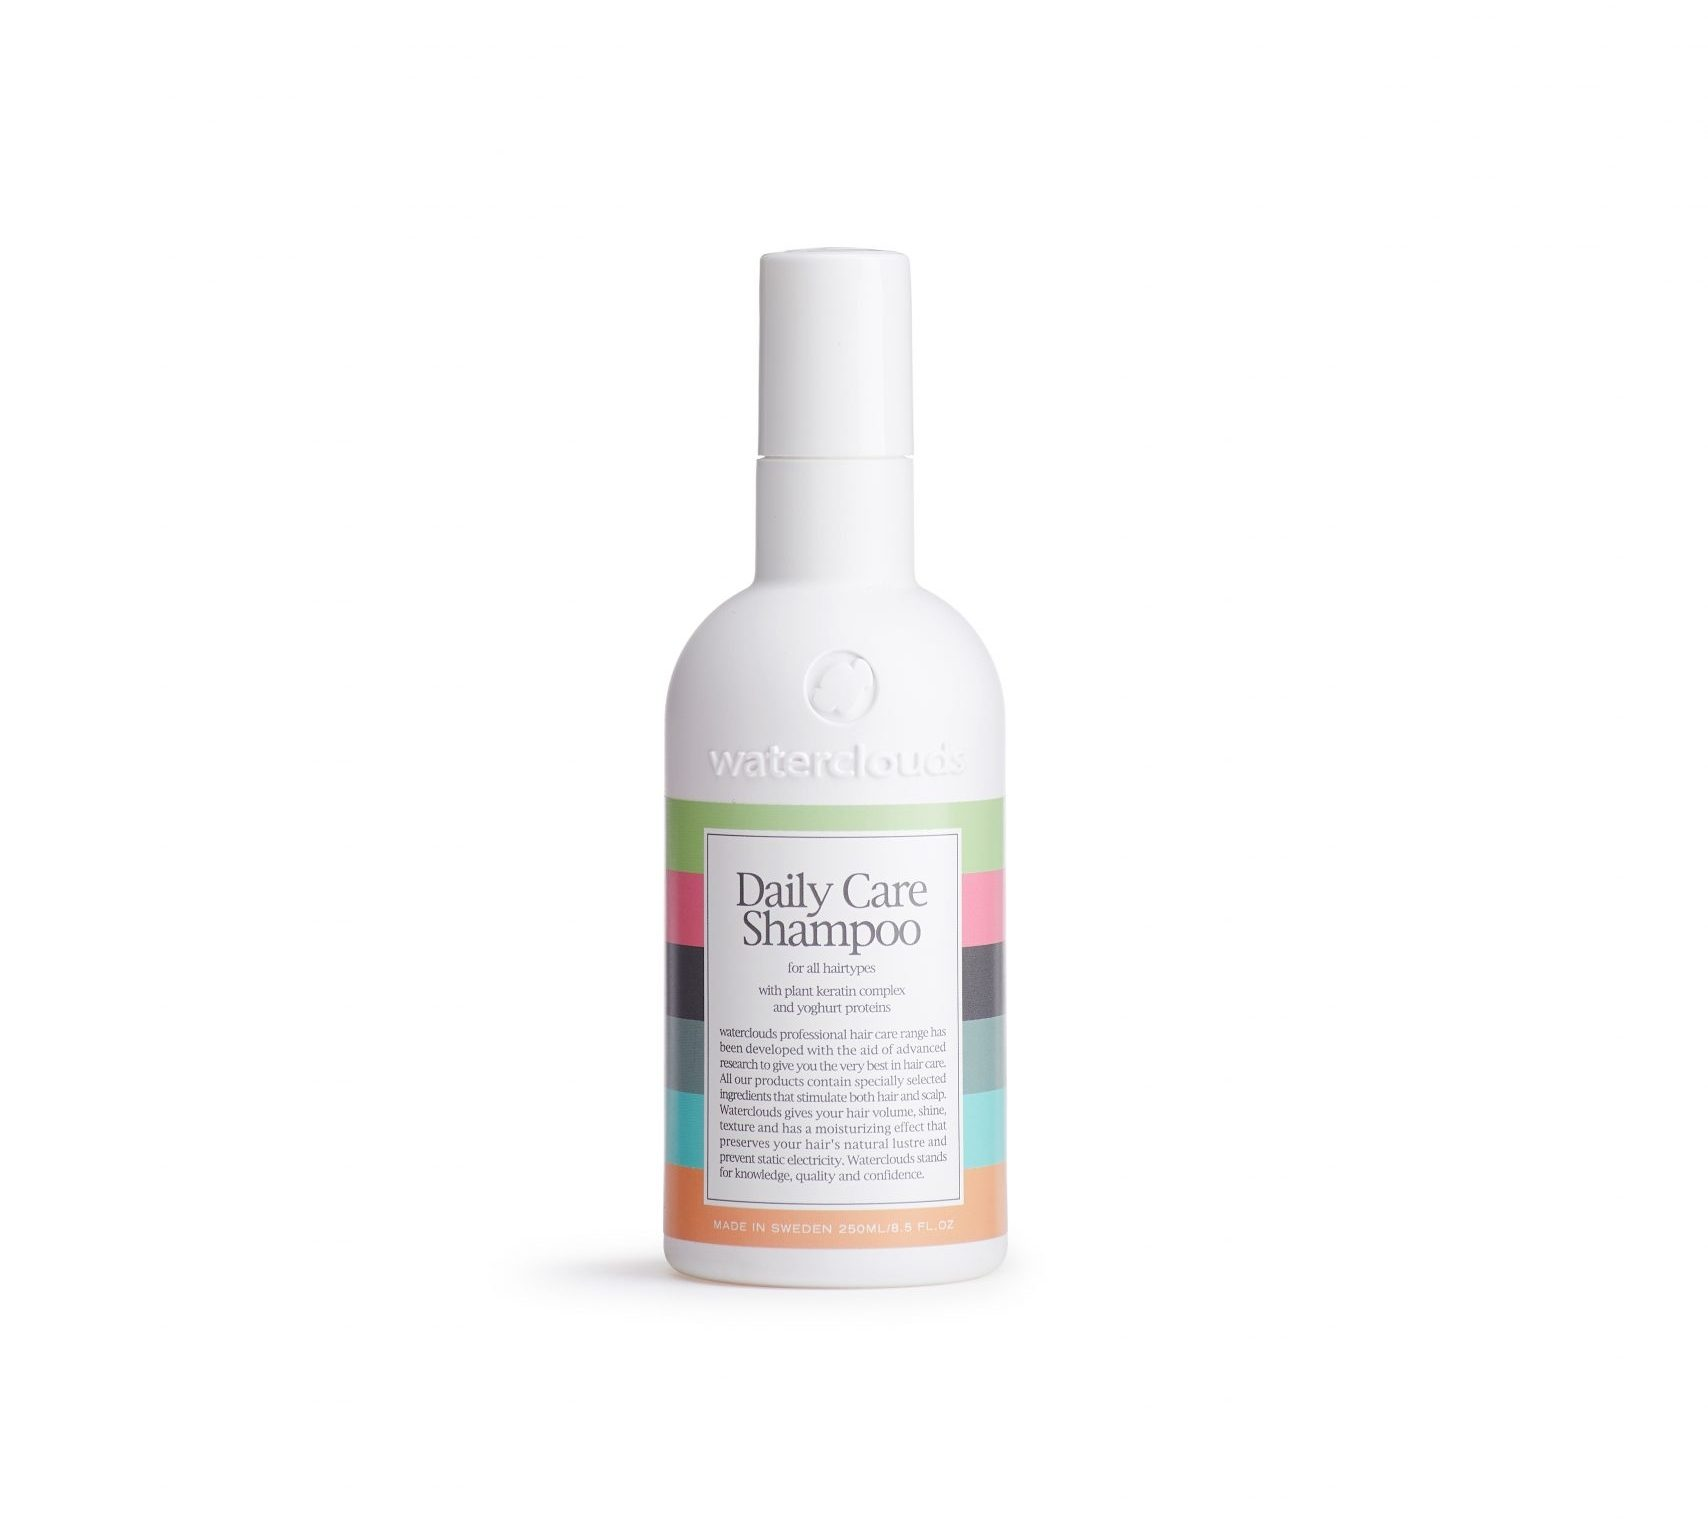 Daily Care Shampoo 250ml – Waterclouds